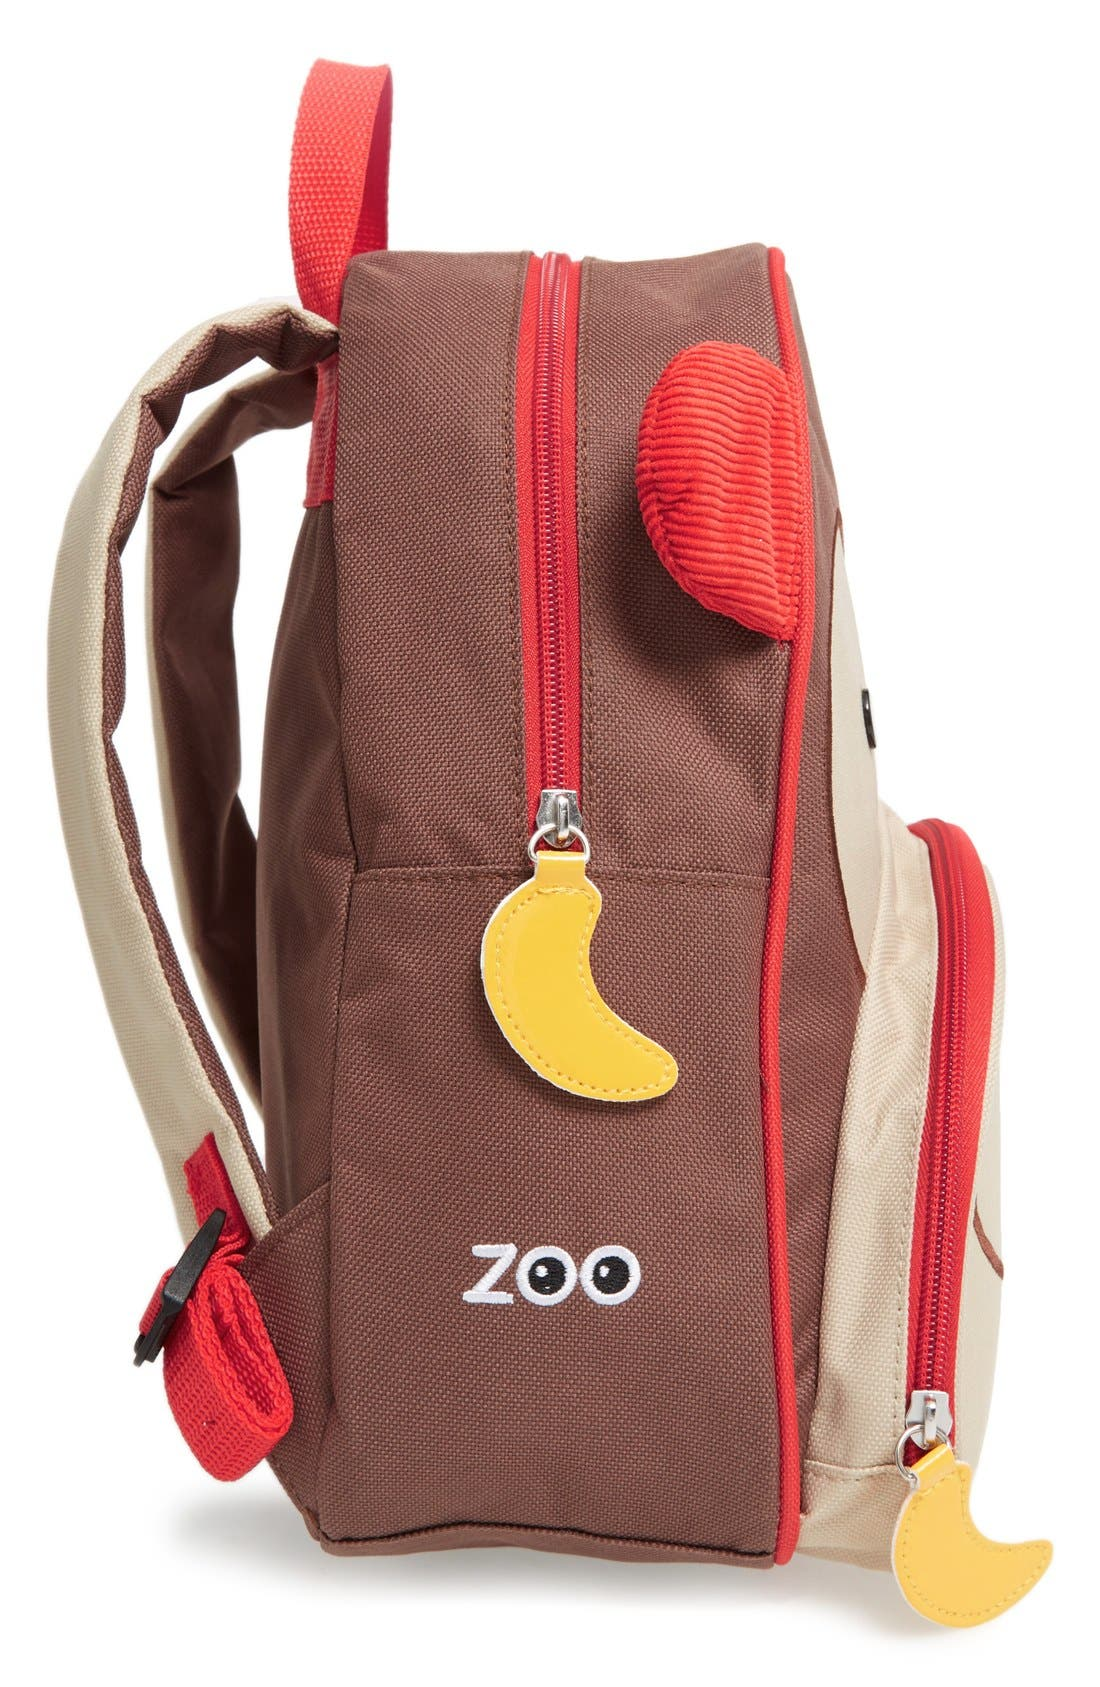 Zoo Pack Backpack,                             Alternate thumbnail 7, color,                             BROWN